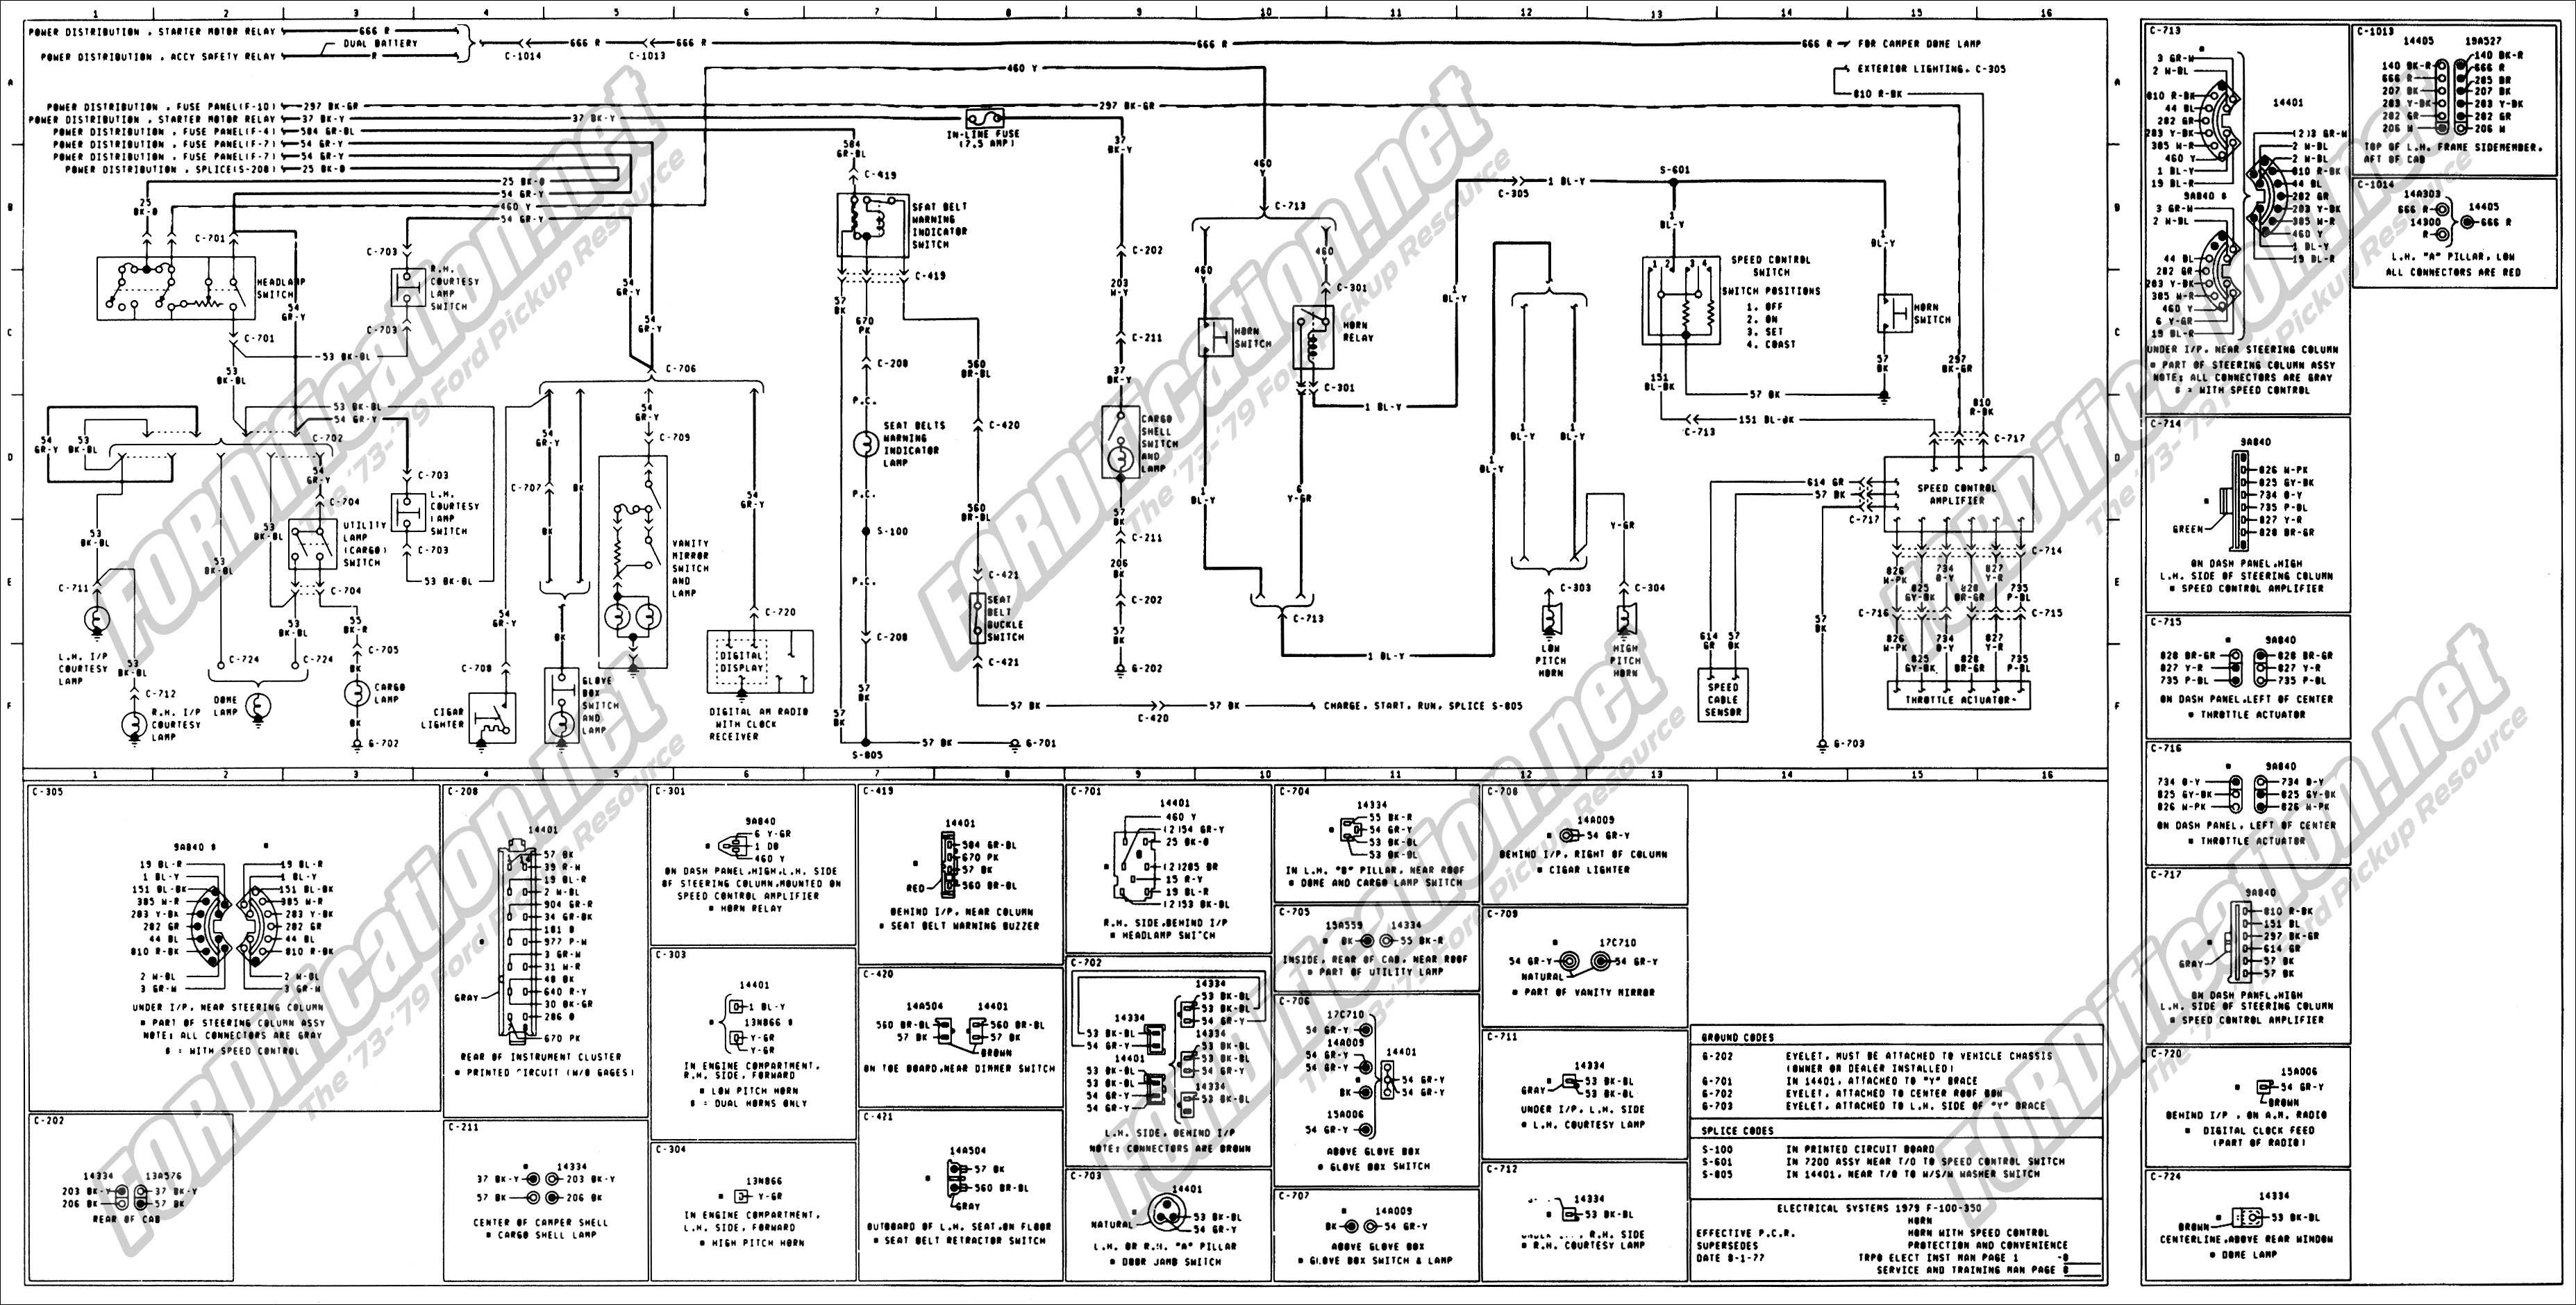 Ford F250 Engine Diagram 1973 1979 ford Truck Wiring Diagrams & Schematics fordification Of Ford F250 Engine Diagram